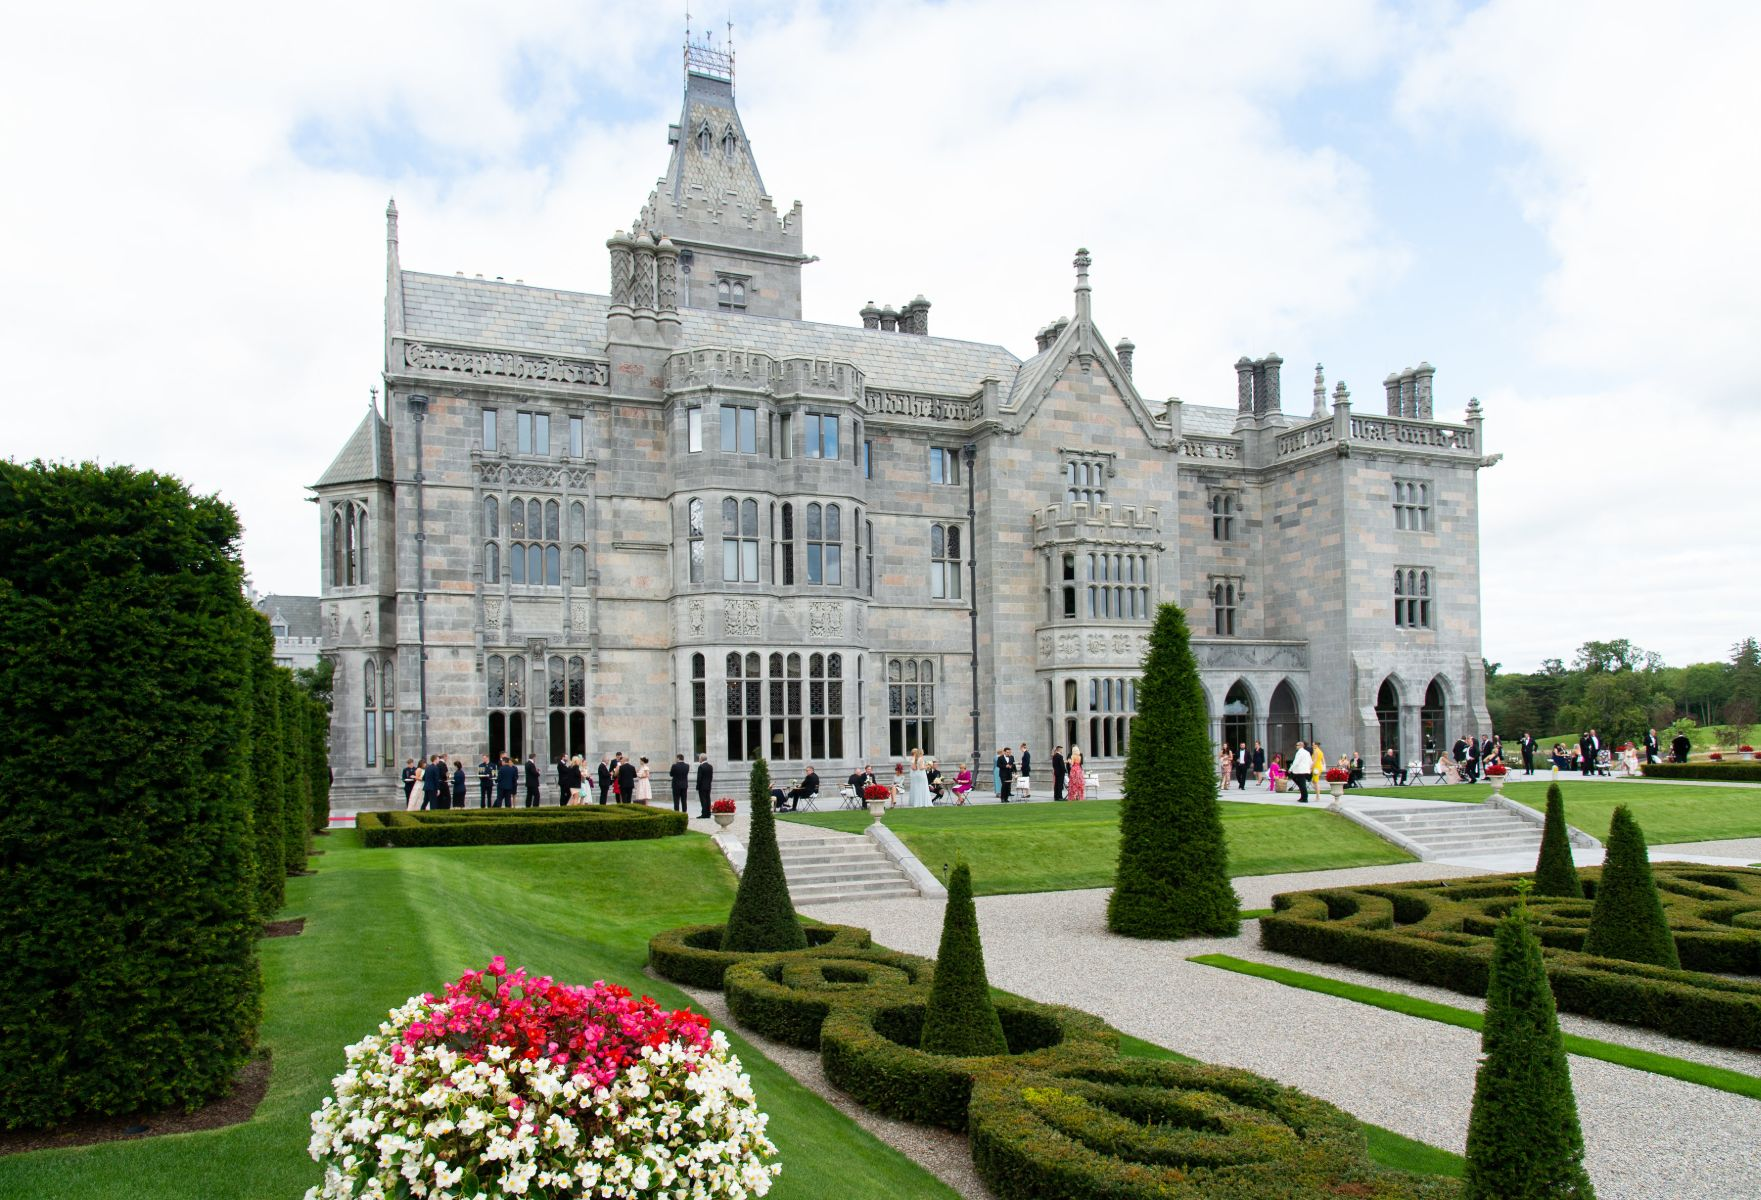 Adare Manor in Ireland, a castle.